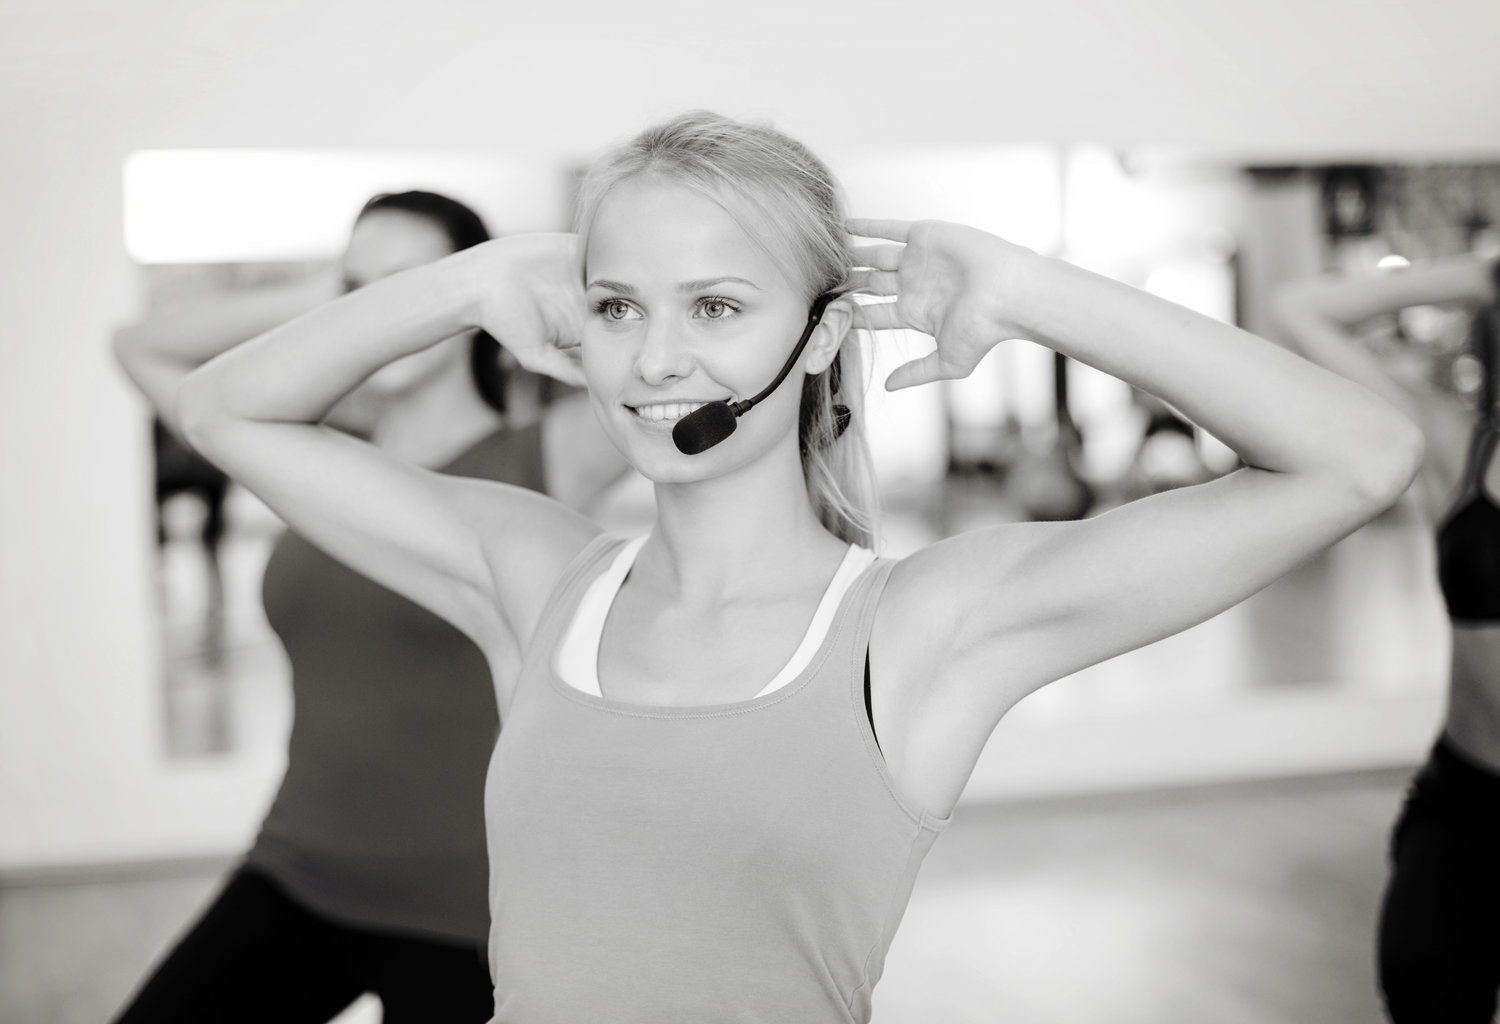 Barre intensity instructor training and certification barre barre training guideline 5 tips for effective cuing xflitez Gallery